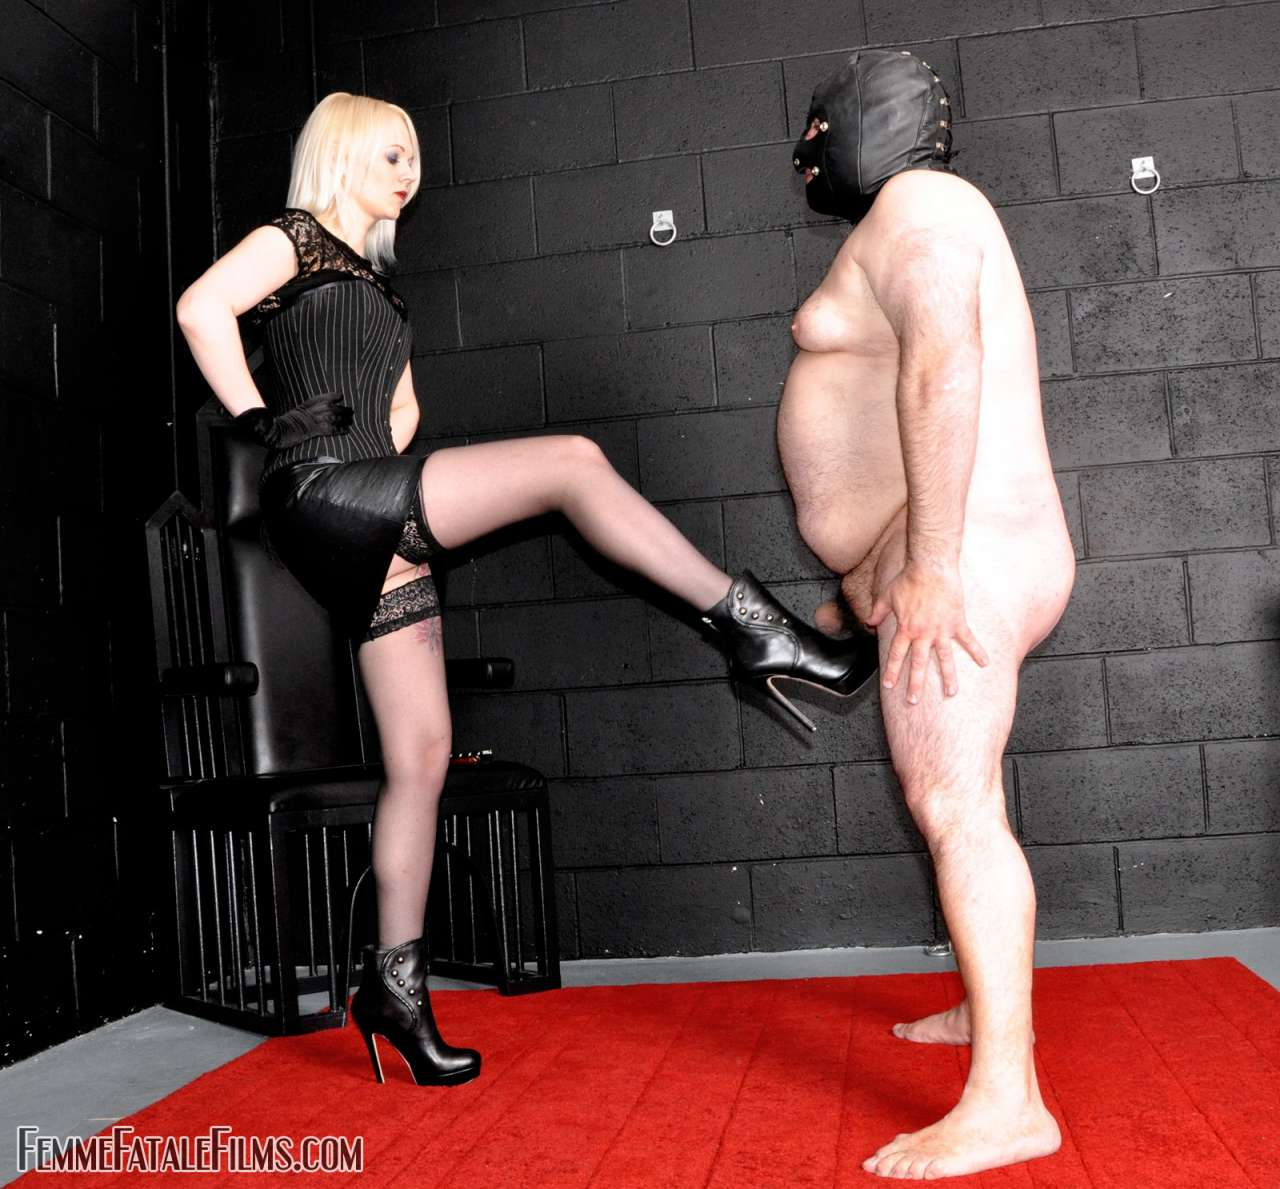 Picture #3 of Glamorous babe wants slave to worship her sexy feet after she kicked him in the balls a few times